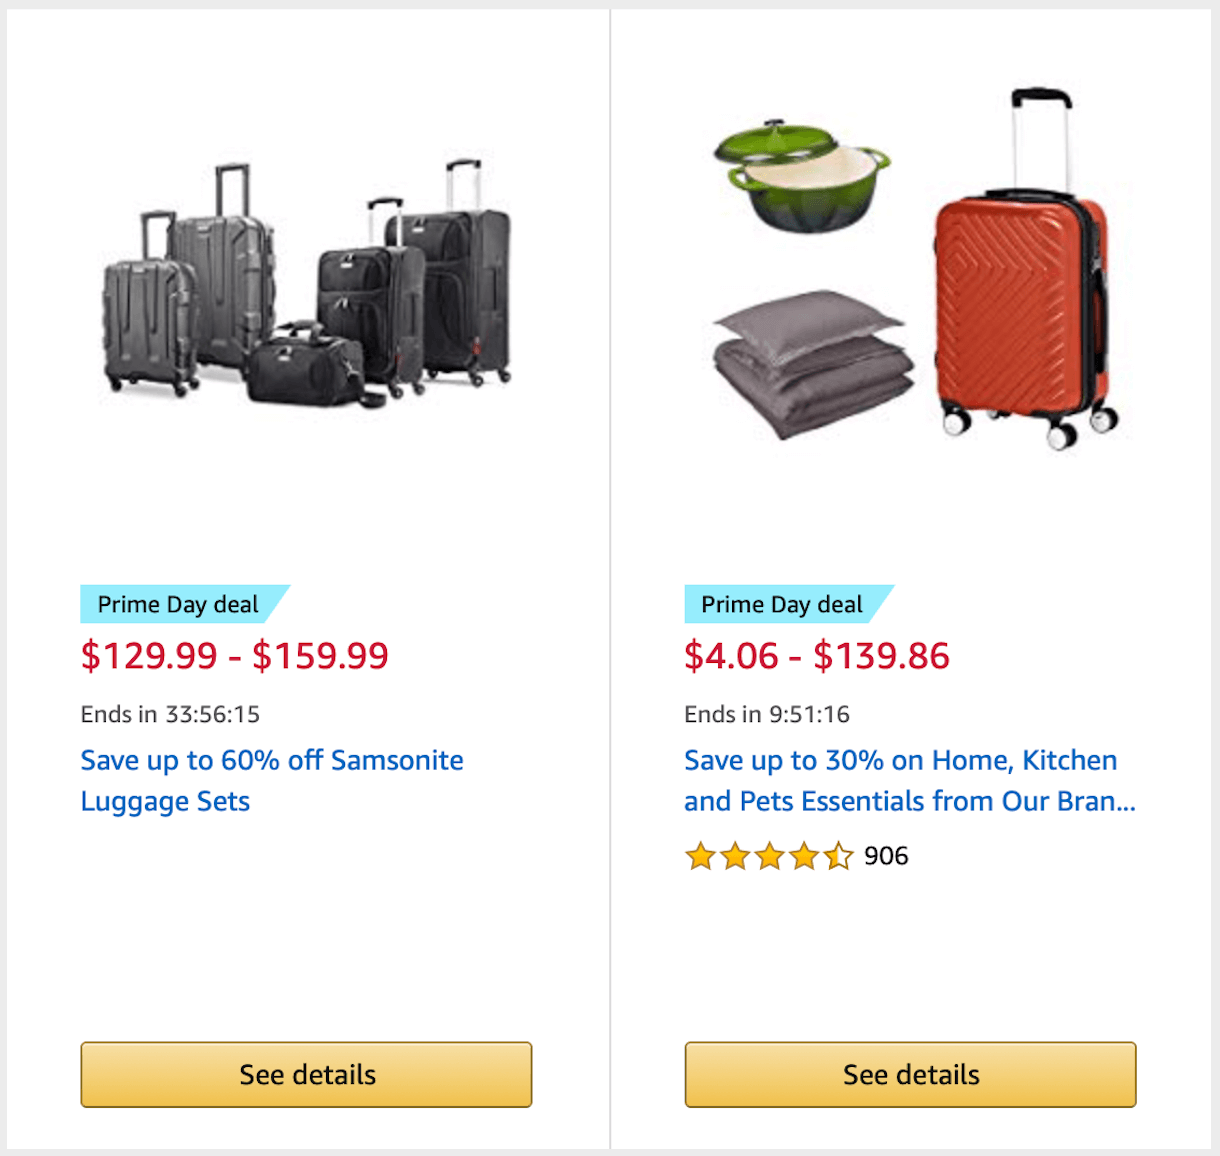 AmazonBasics vs Samsonite